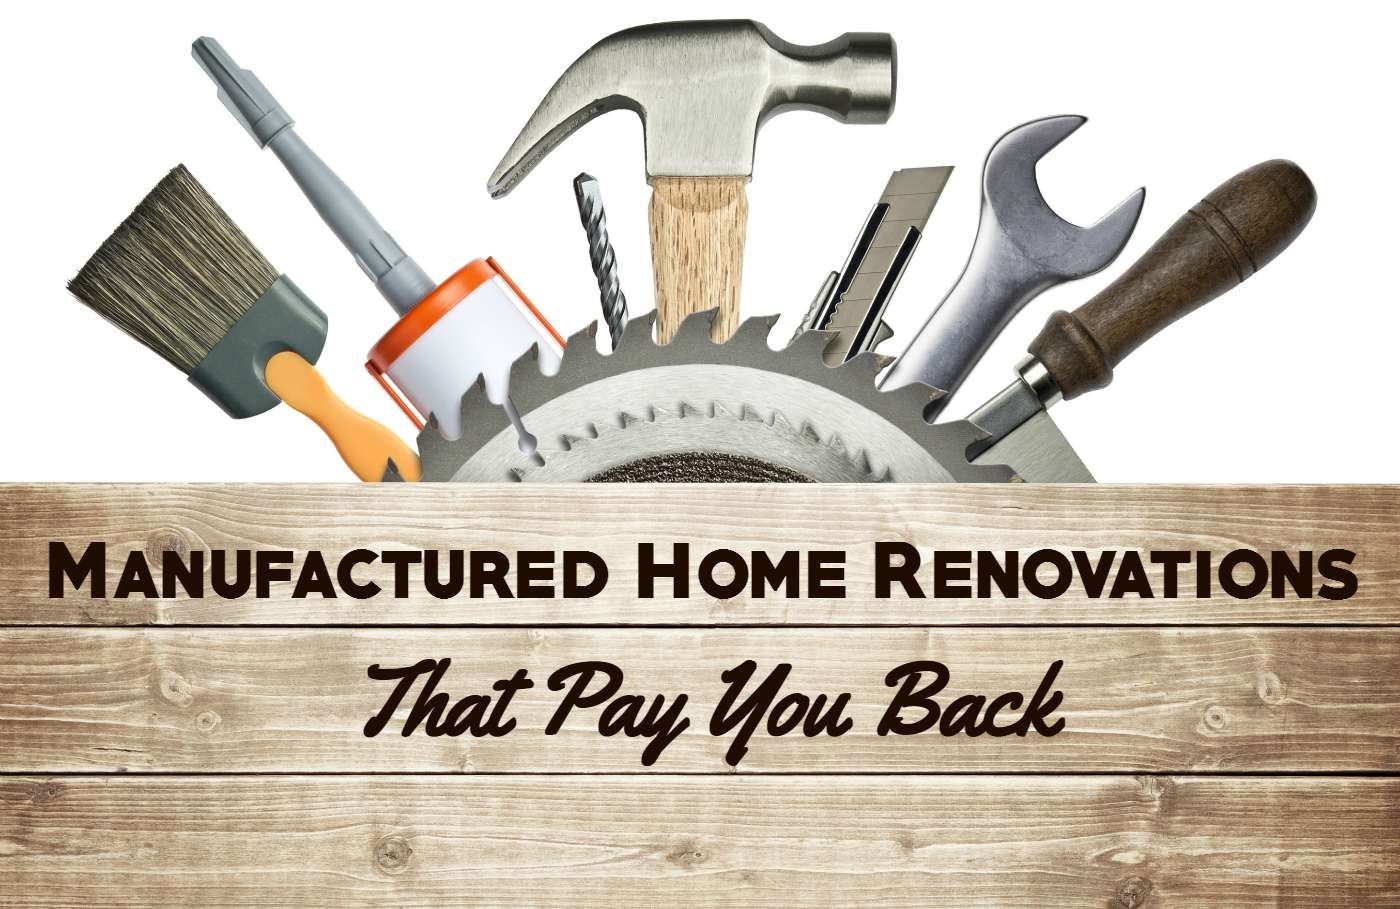 Manufactured Home Renovations That Pay